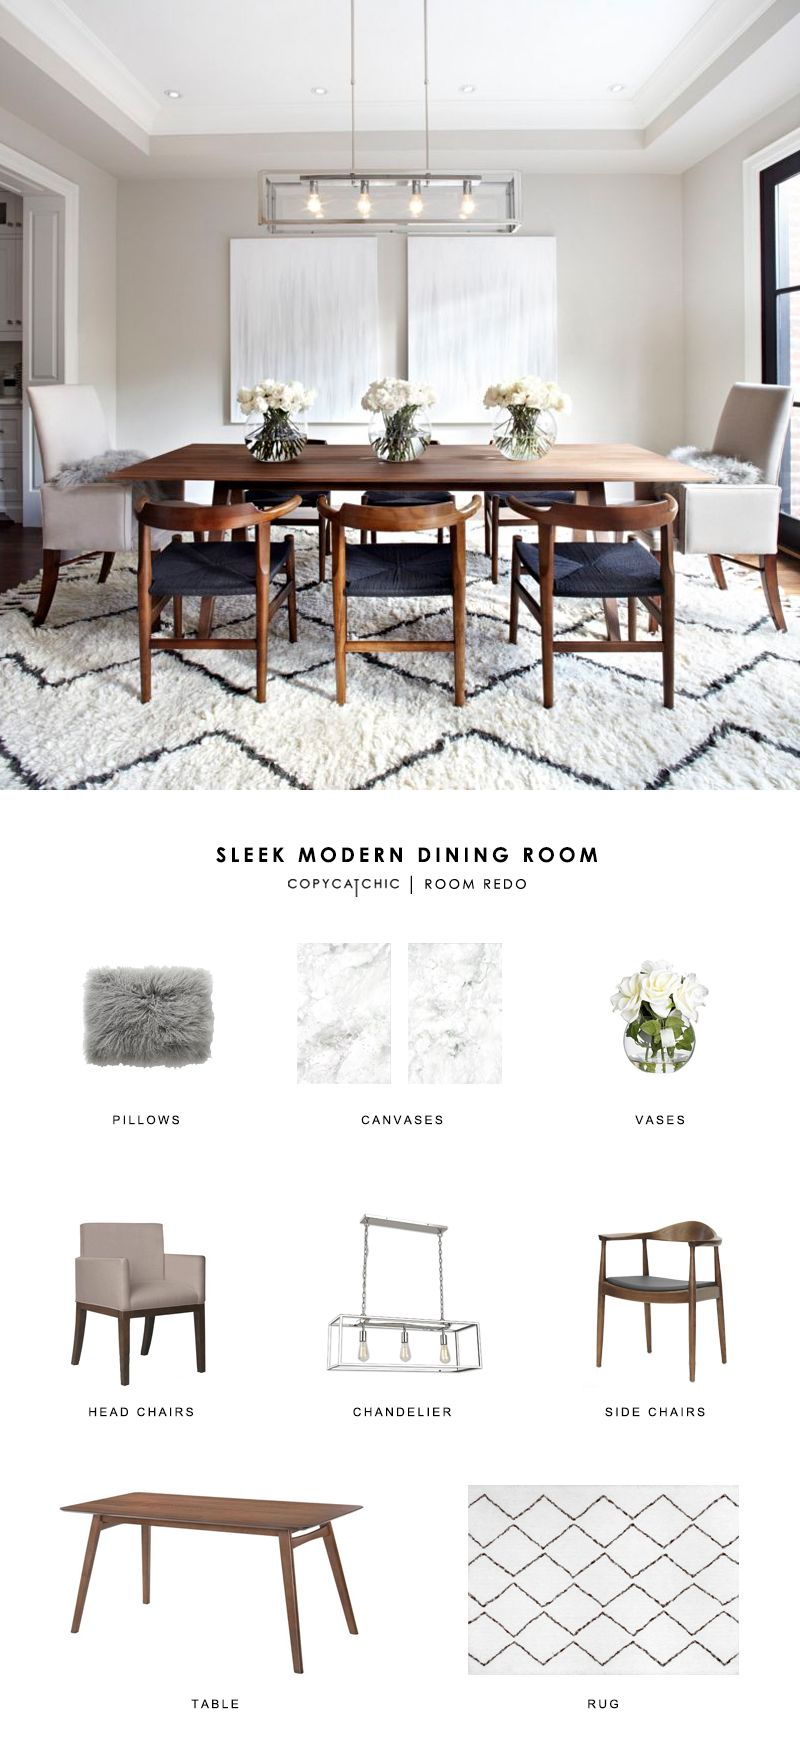 151 Ea Side Chairs On Houzz Dining Room Design Dining Room Inspiration Modern Dining Room